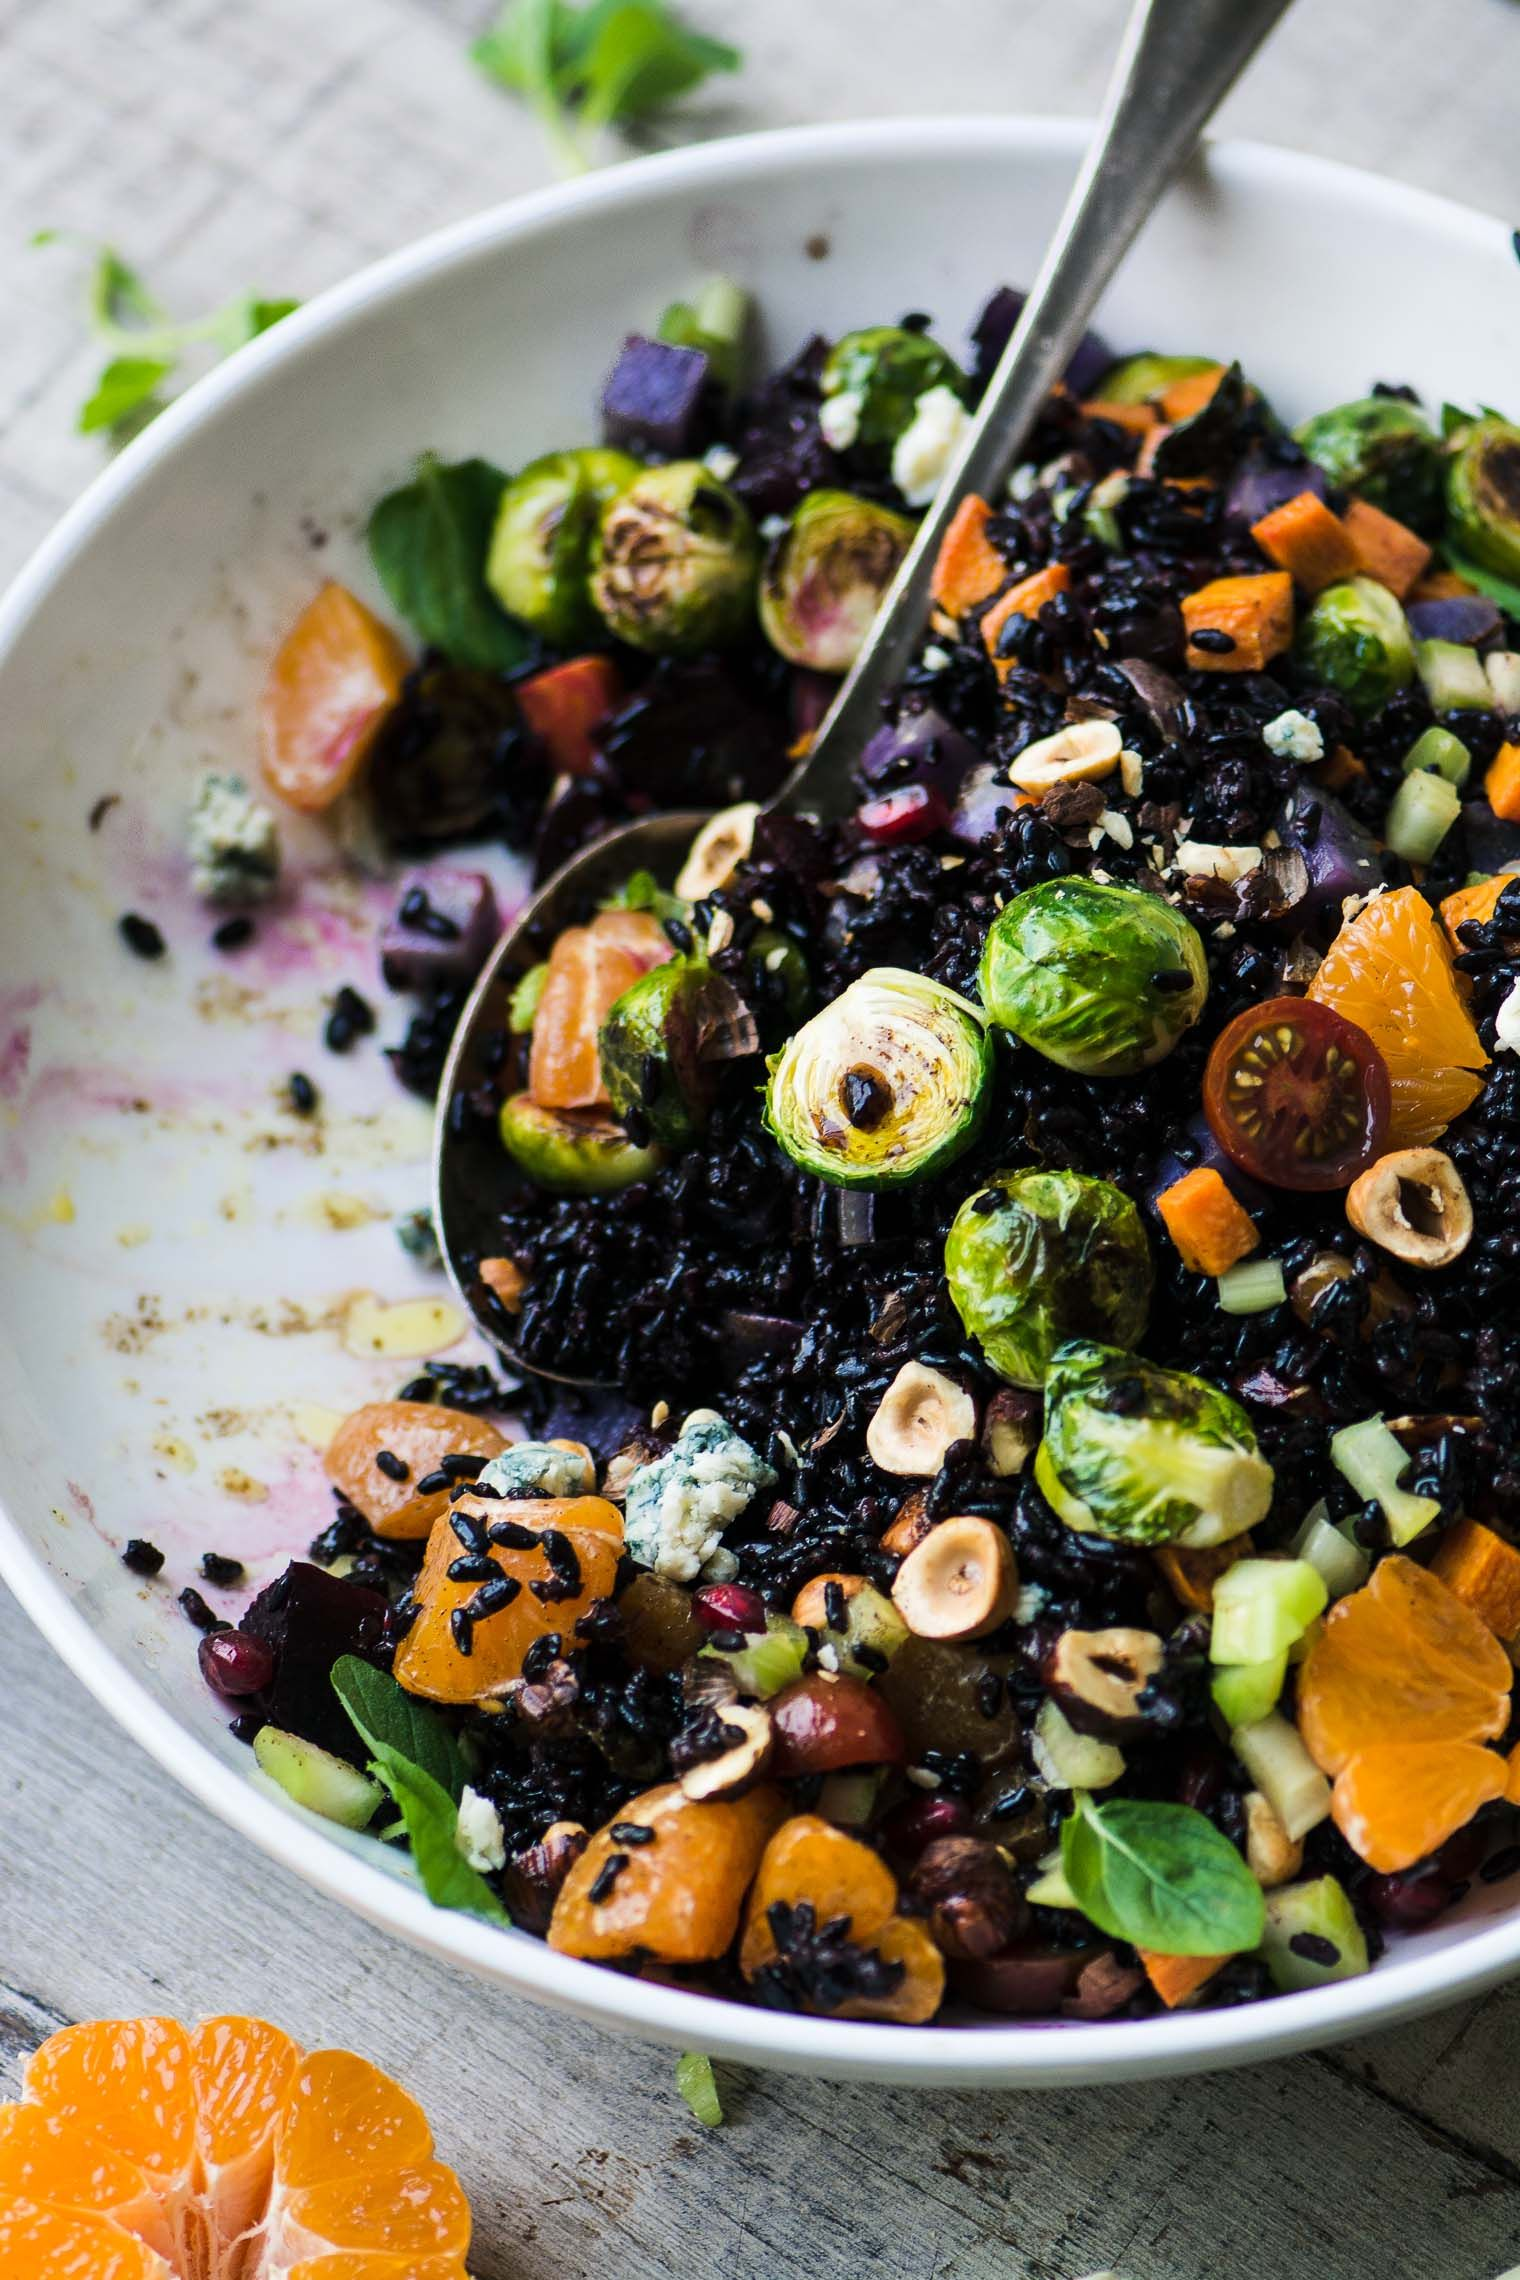 Black Rice Salad With Roasted Vegetables The View From Great Island Black Rice Salad Rice Salad Recipes Autumn Salad Recipes